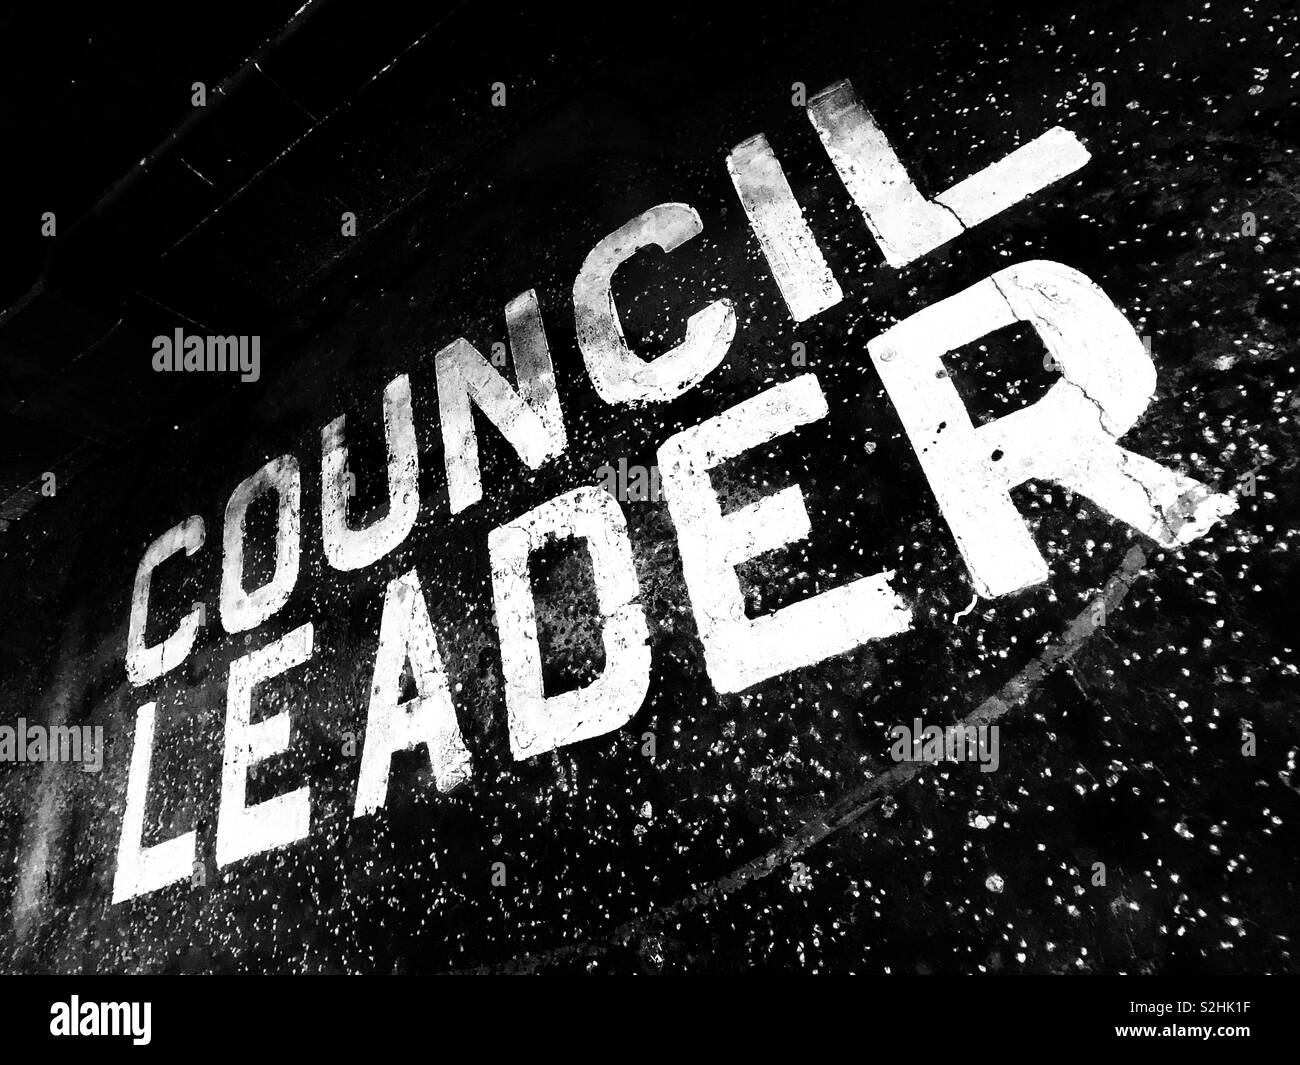 Council leader private parking space. - Stock Image